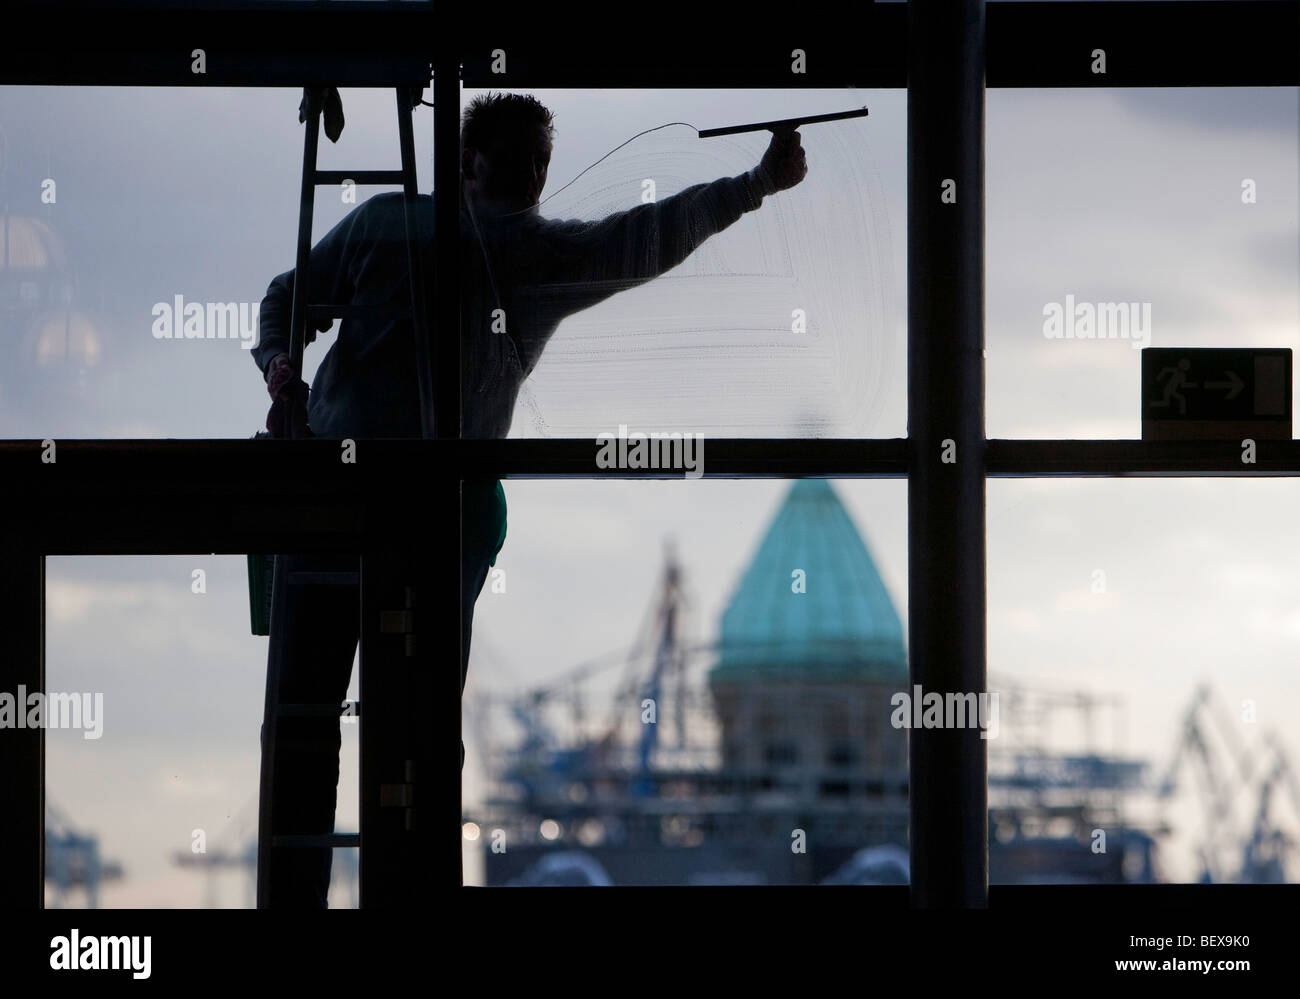 Window cleaner - Stock Image